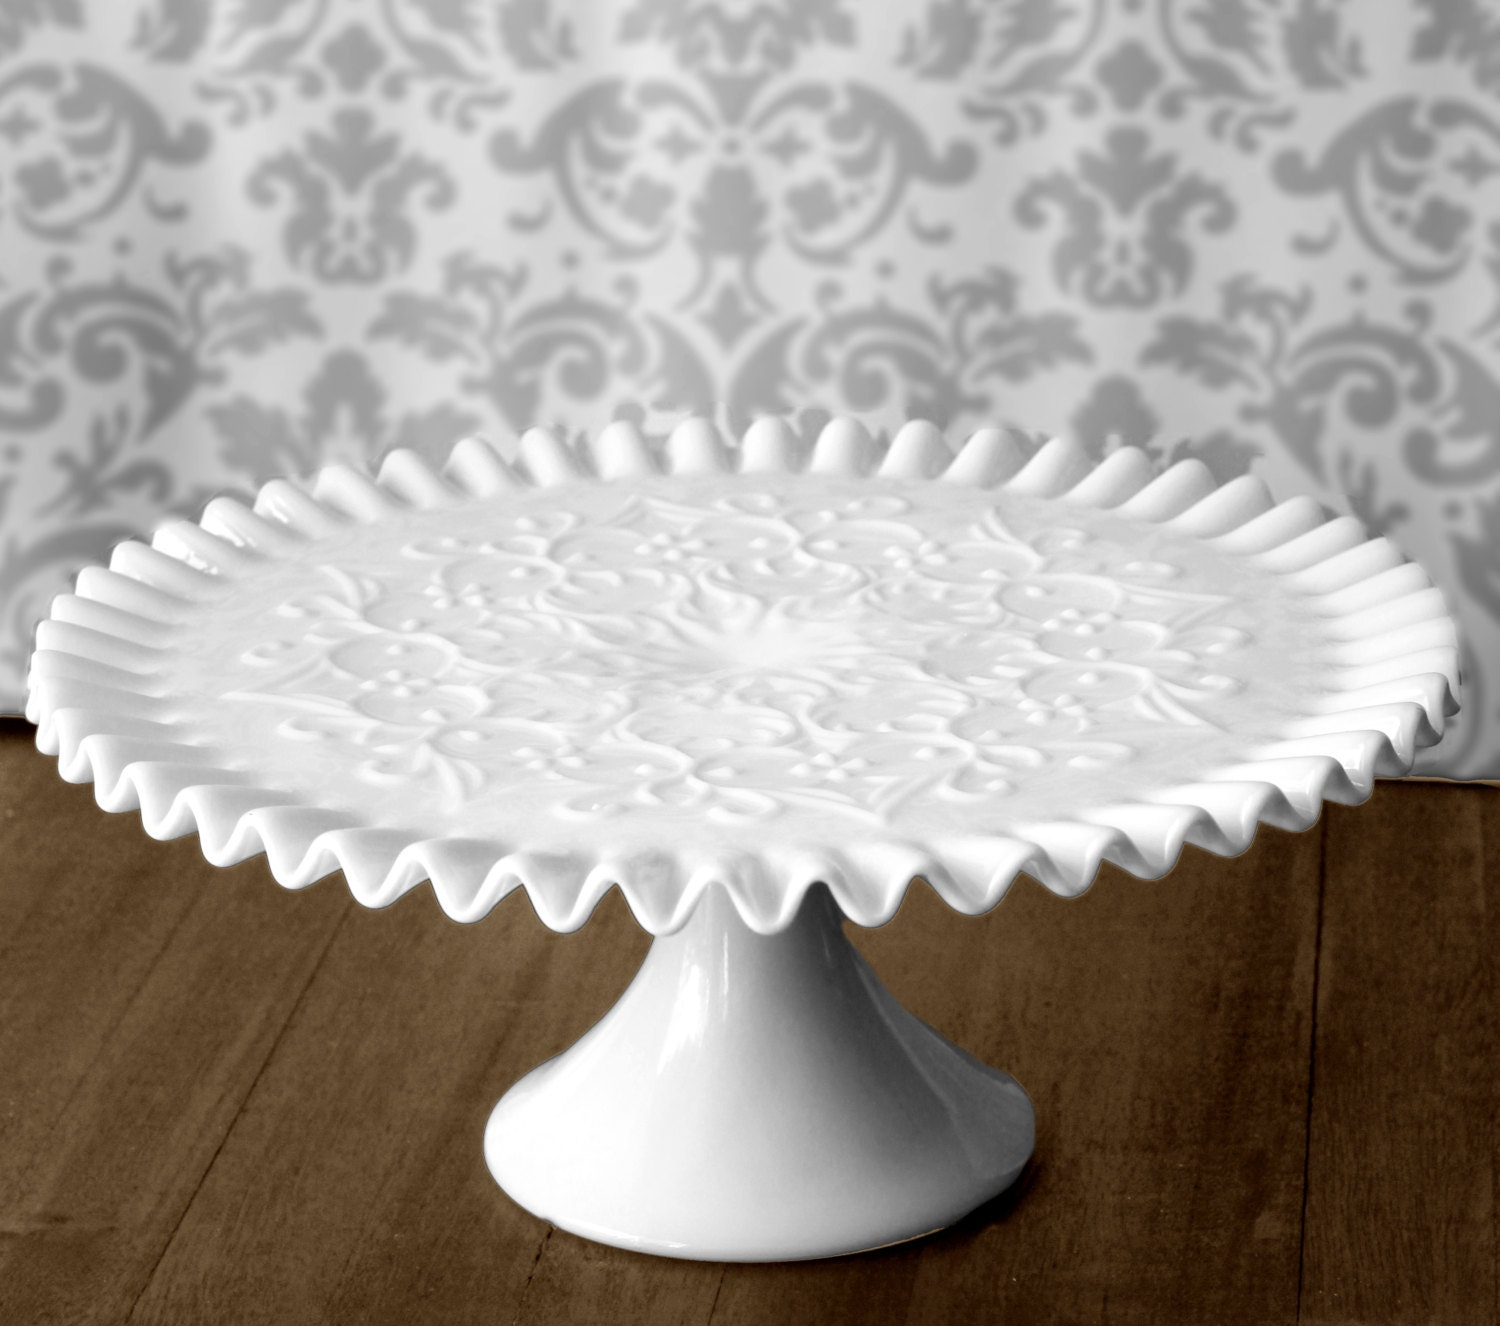 Milk Glass Cake Stand / Vintage Cake Stand Cake Pedestal for